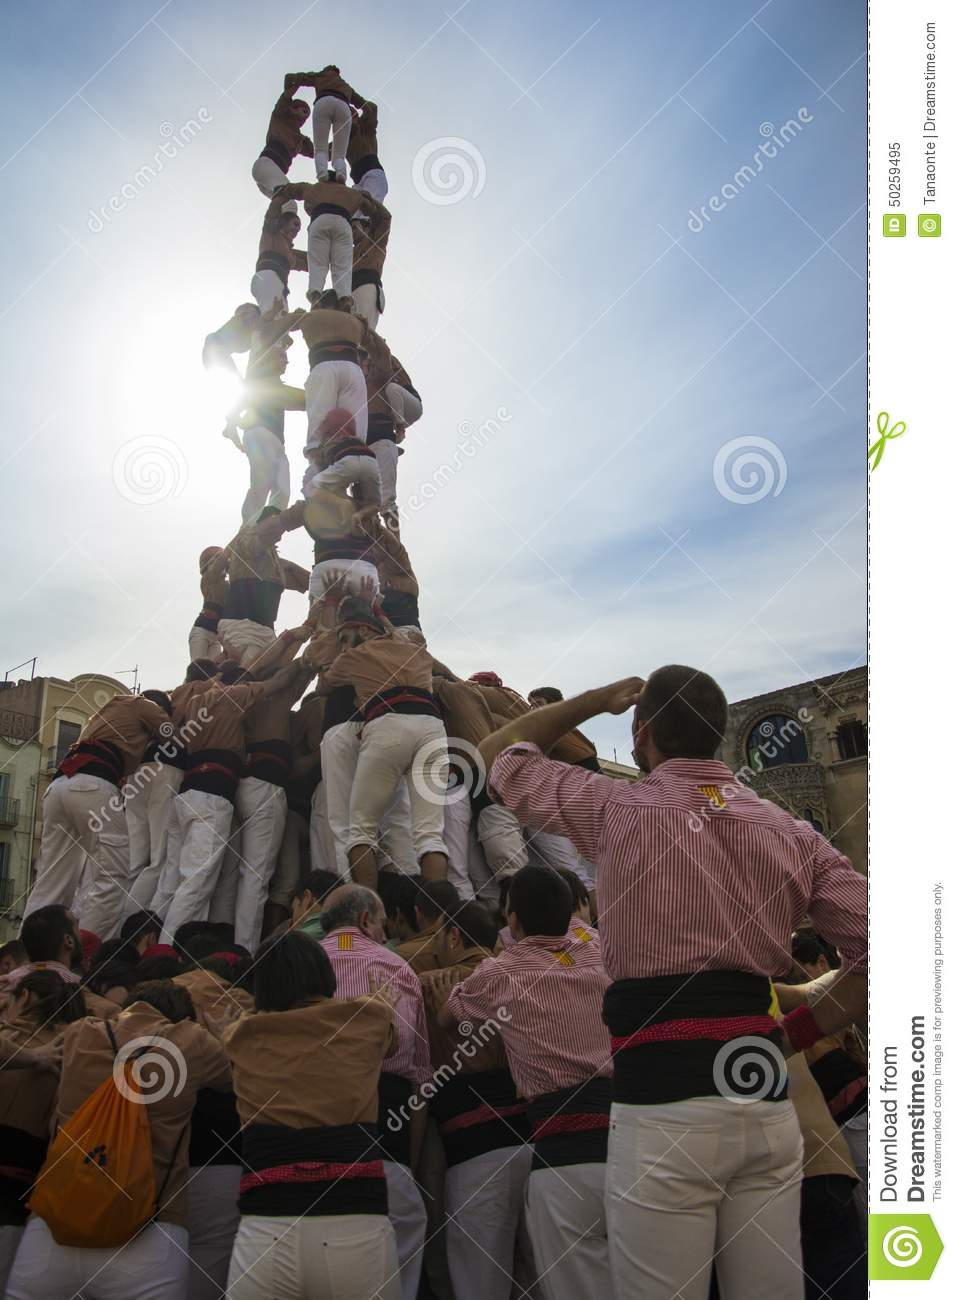 REUS, SPAIN - OCTOBER 25, 2014: Castells Performance, a castell is a human tower built traditionally in festivals within Catalonia